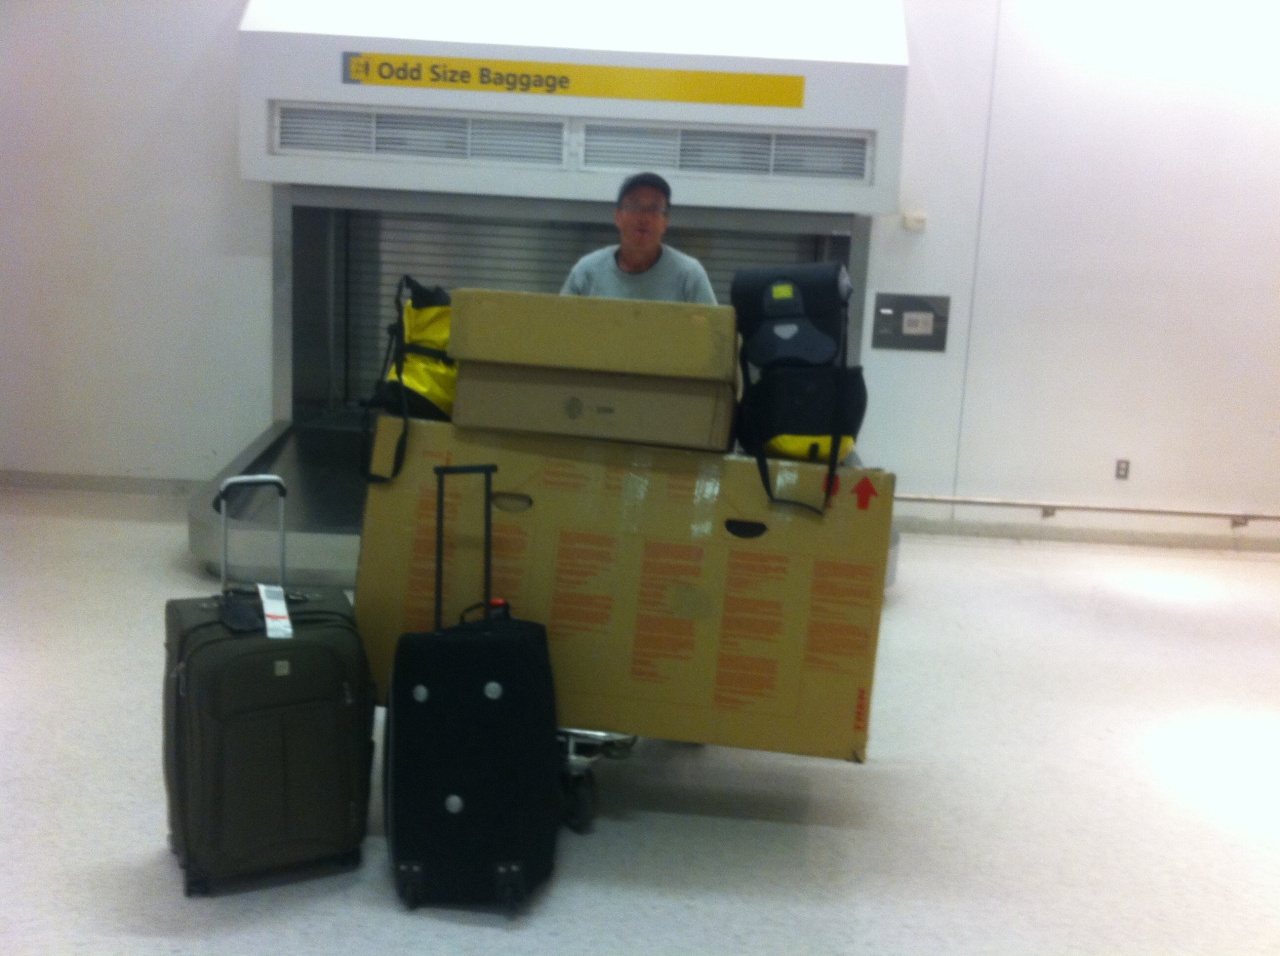 San Francisco to New York: Bikes, Bags, Luggage and Logistics